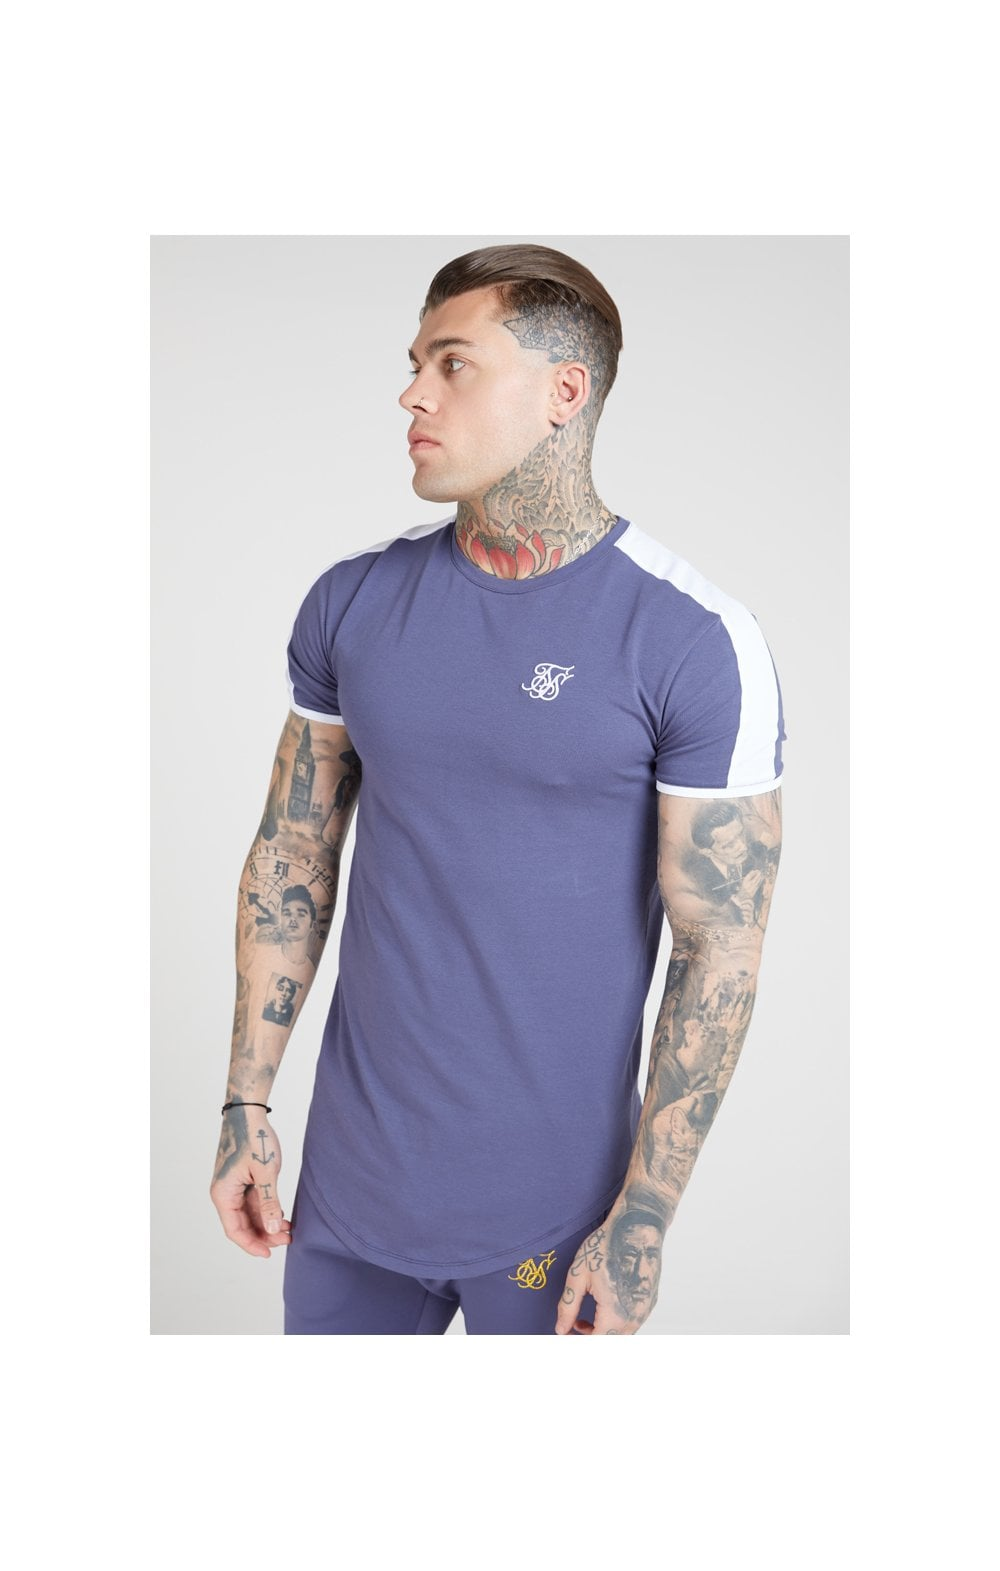 SikSilk S/S Panel Gym Tee – Ocean Slate